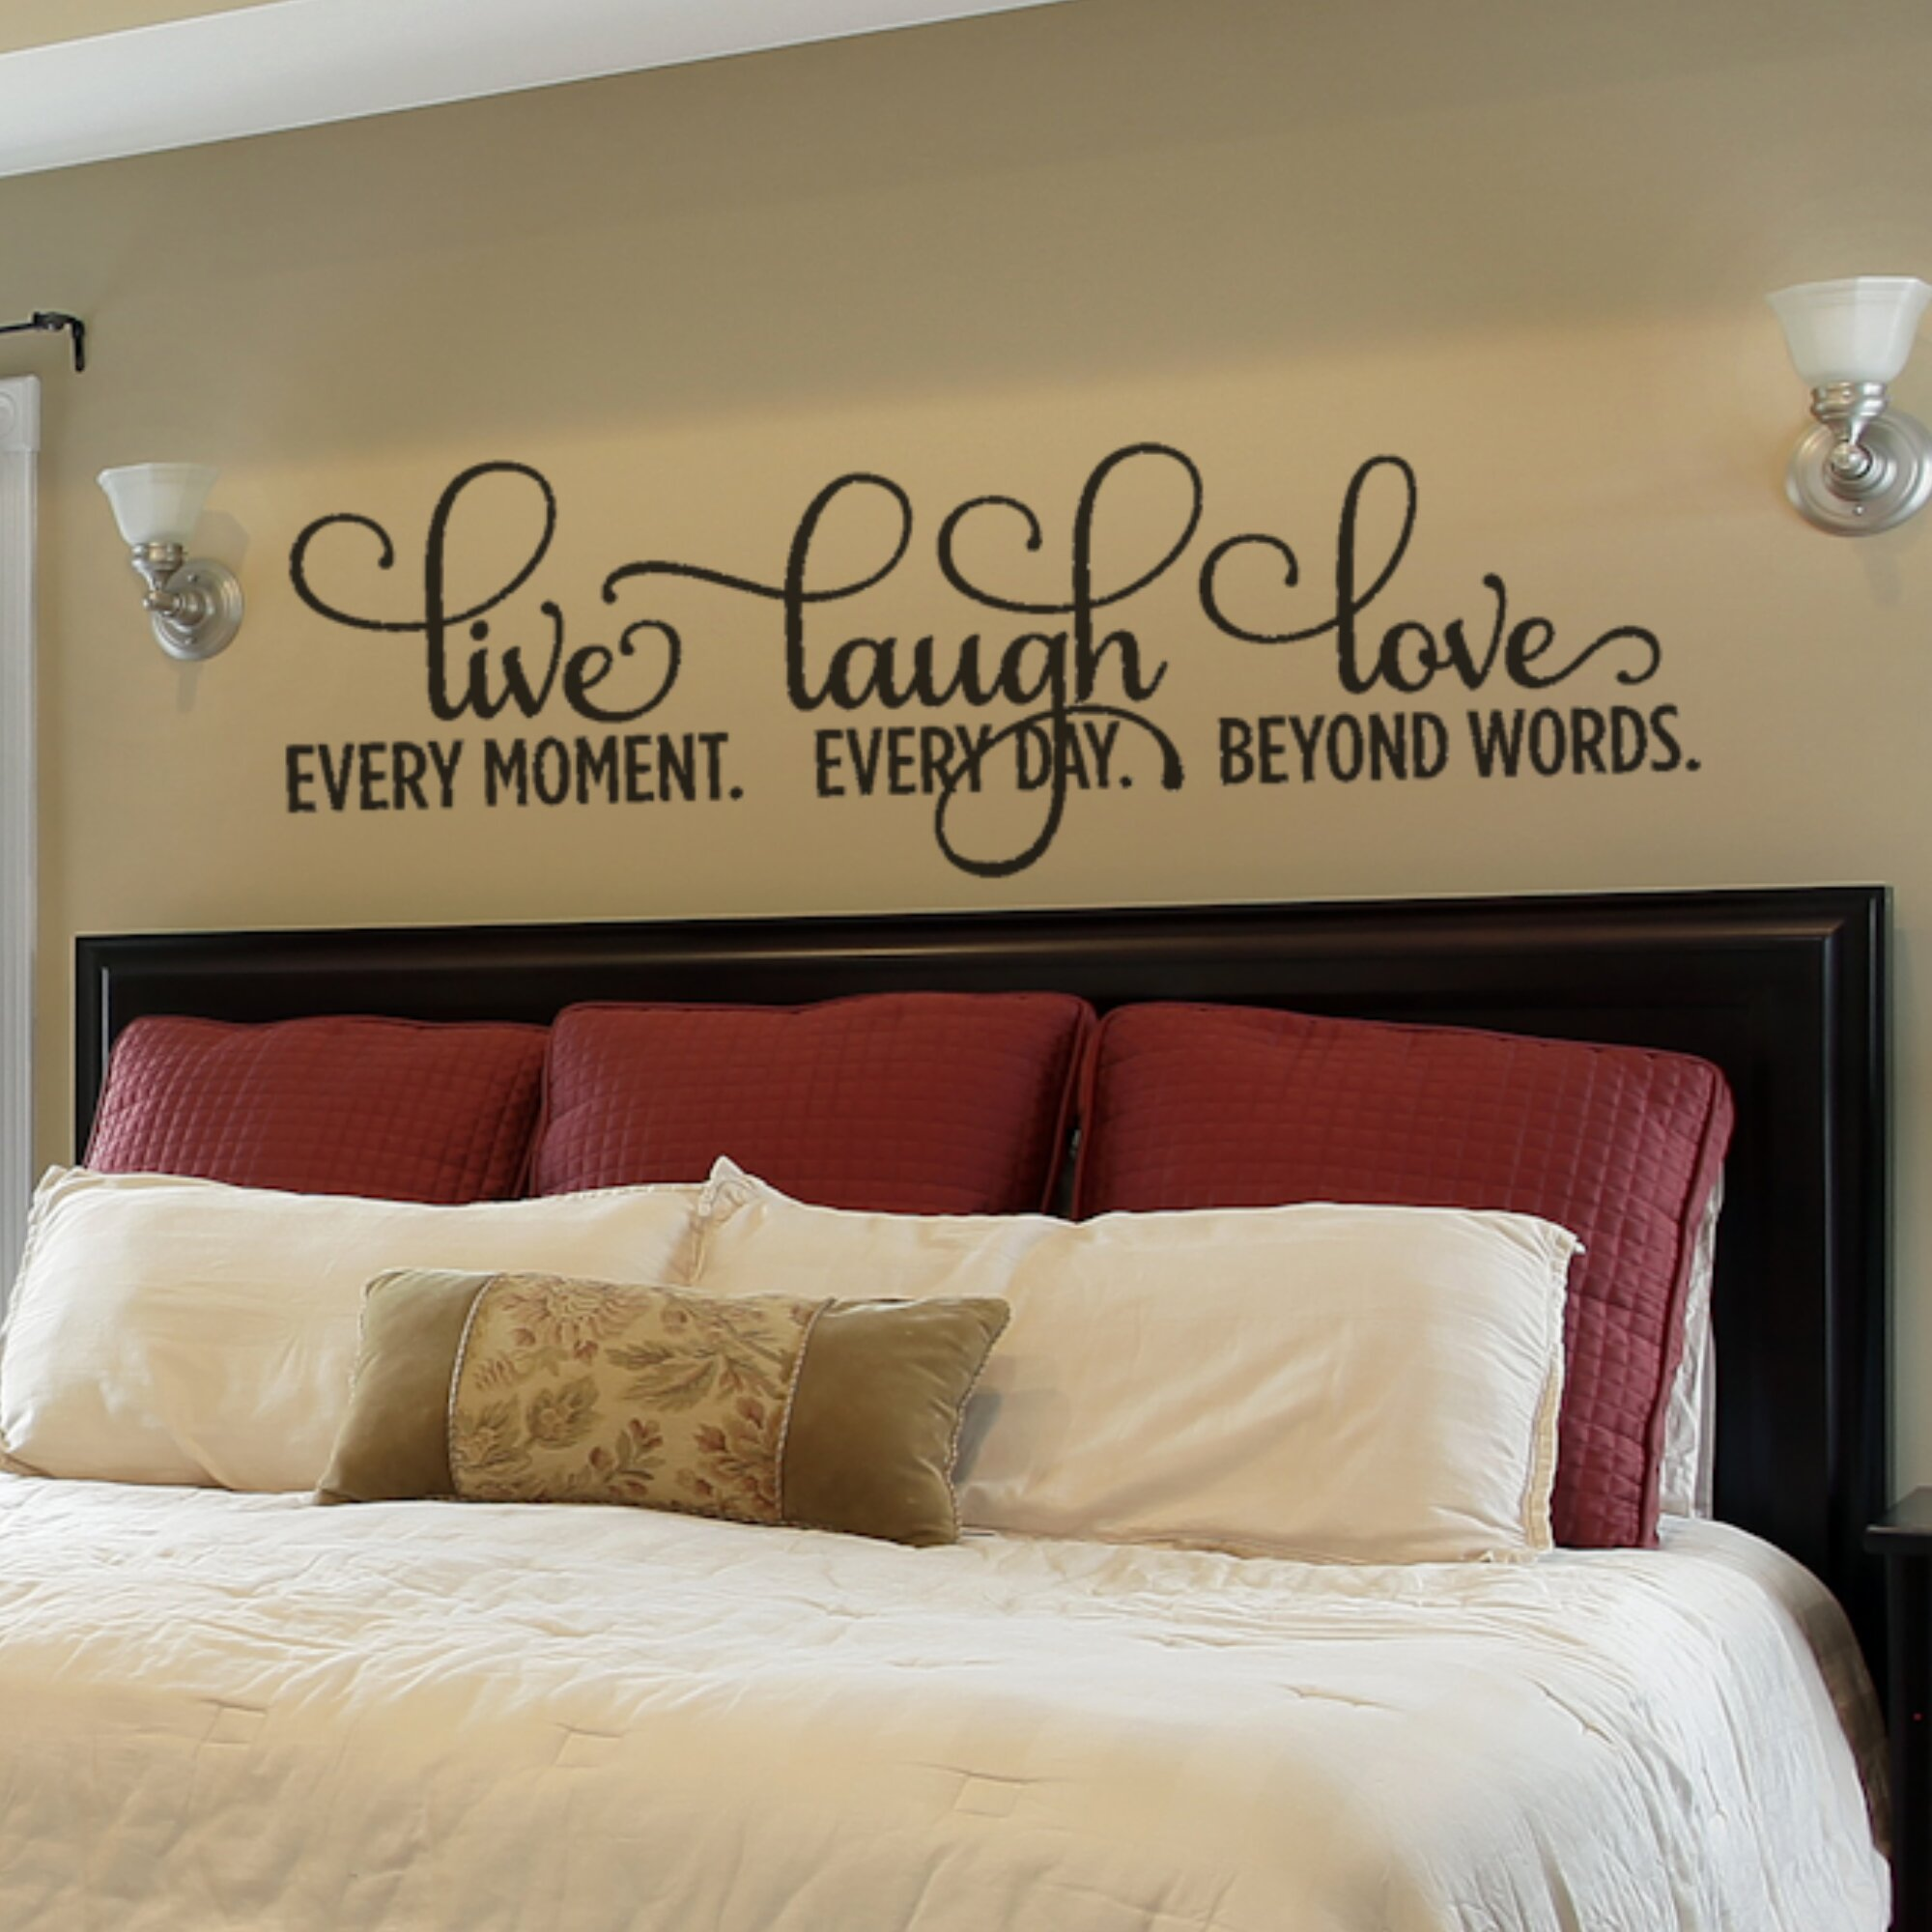 Wayfair & Live Laugh Love Wall Decal Extra Large